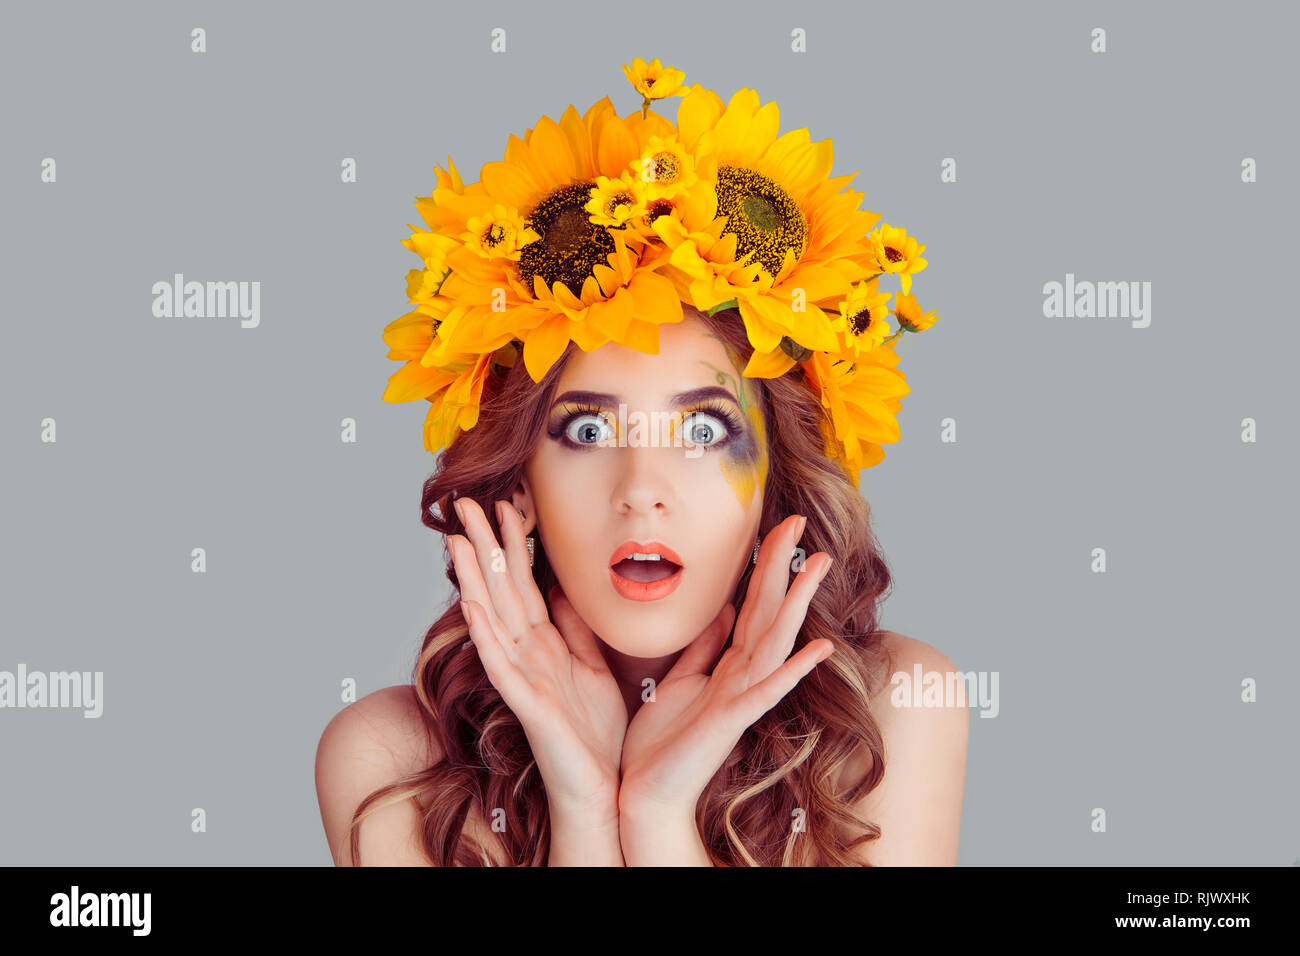 Amazed stunned Woman with floral headband looking at camera in shock. Fashion girl with crown from sunflowers on head hands near face stresses and  sh - Stock Image